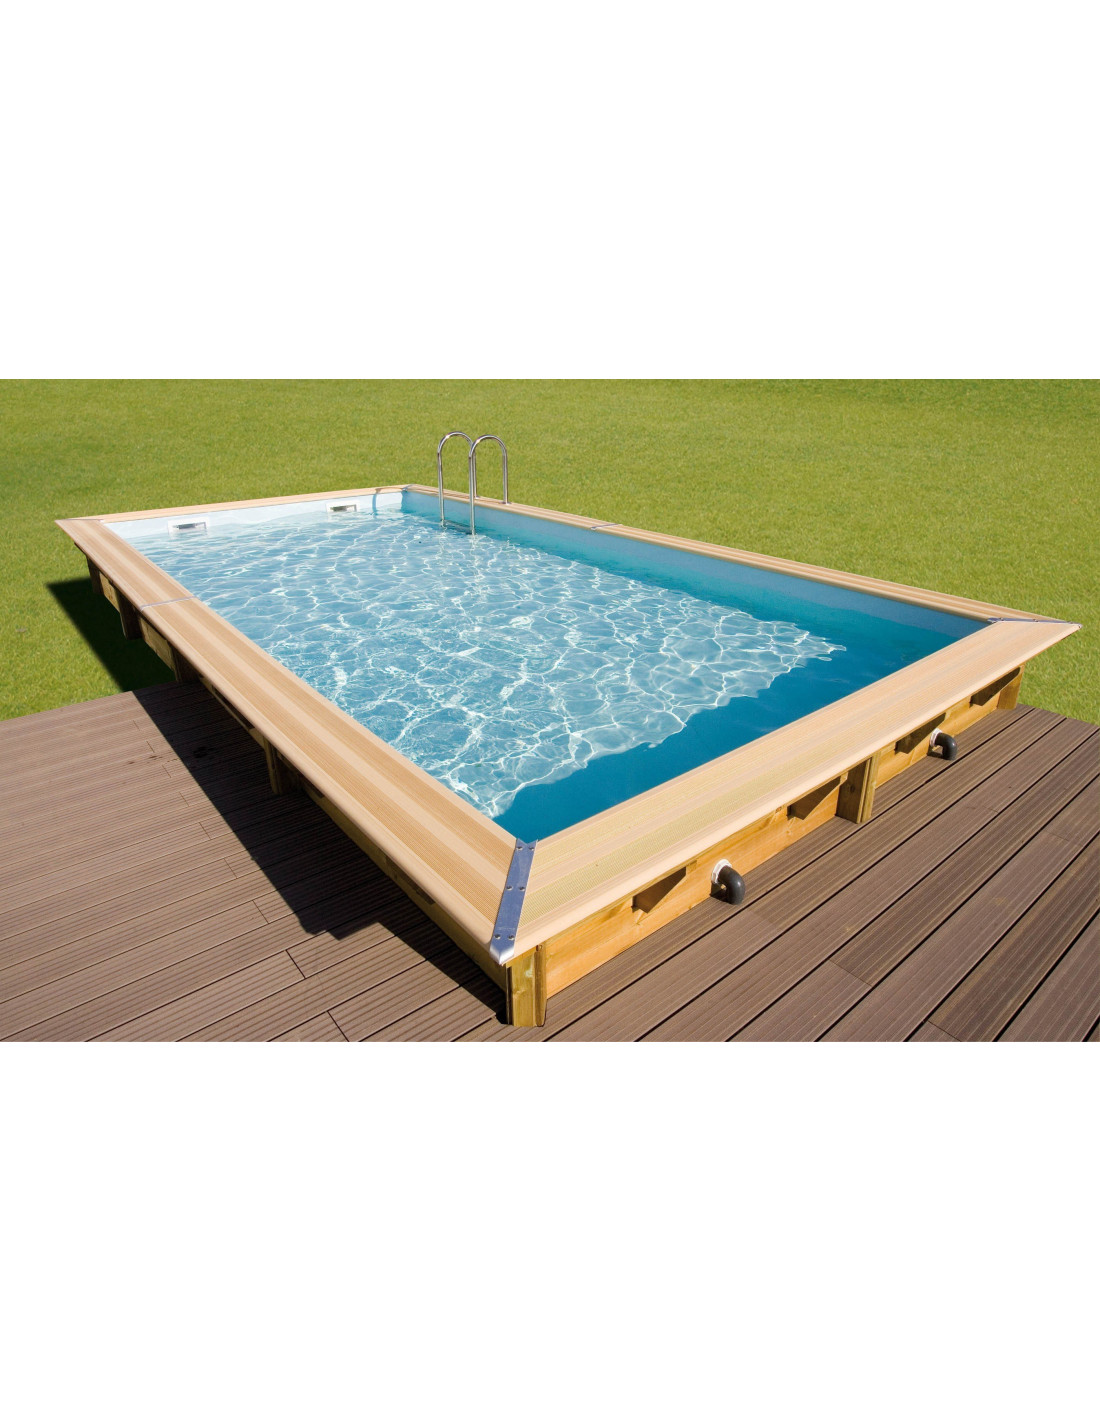 Piscine Demontable Rectangulaire Of Piscine Hors Sol Bois Lin A 650 X 350 X 140 Cm Liner